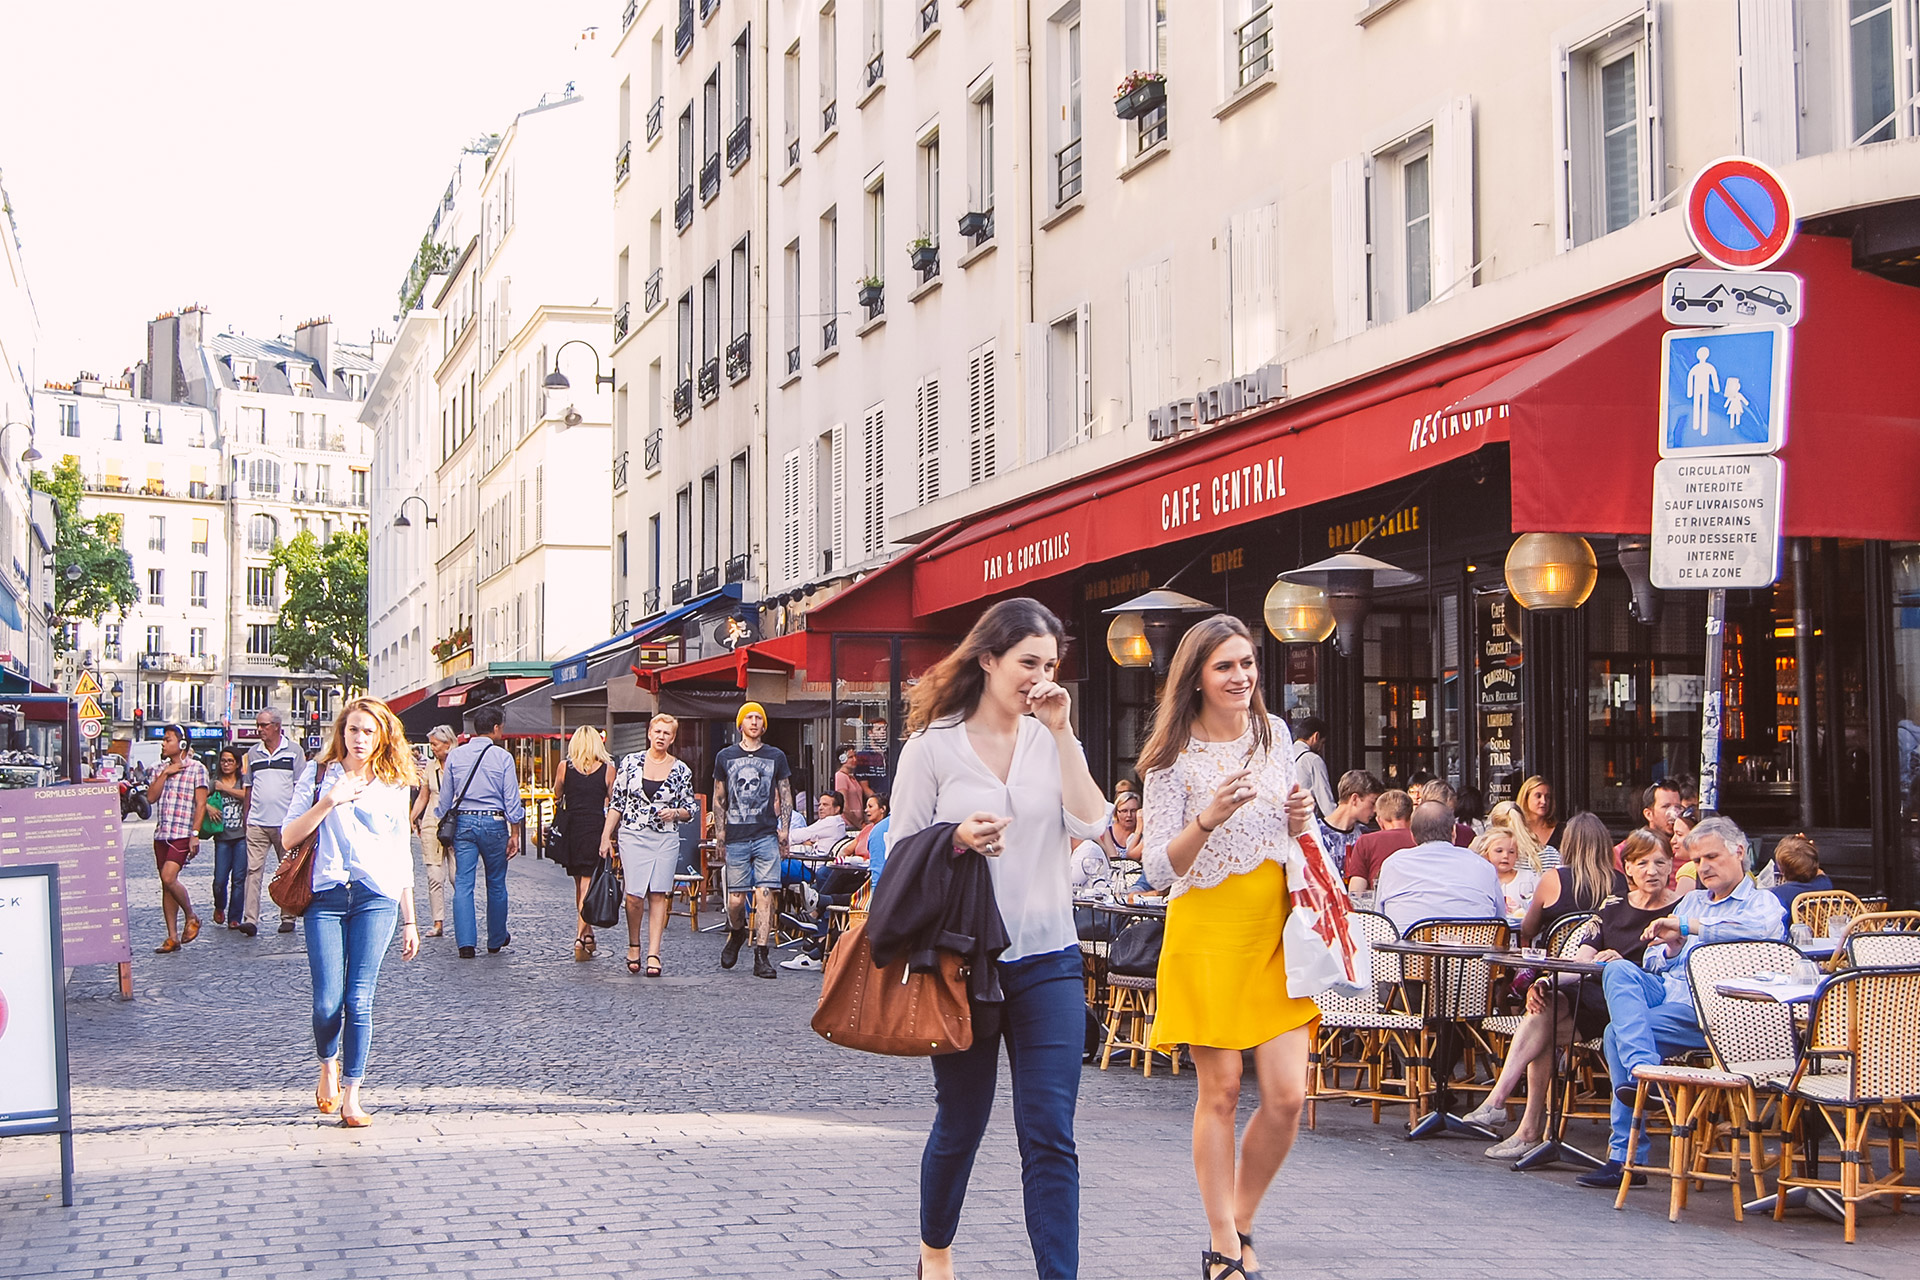 Walk to the famous Rue Cler market street in Paris